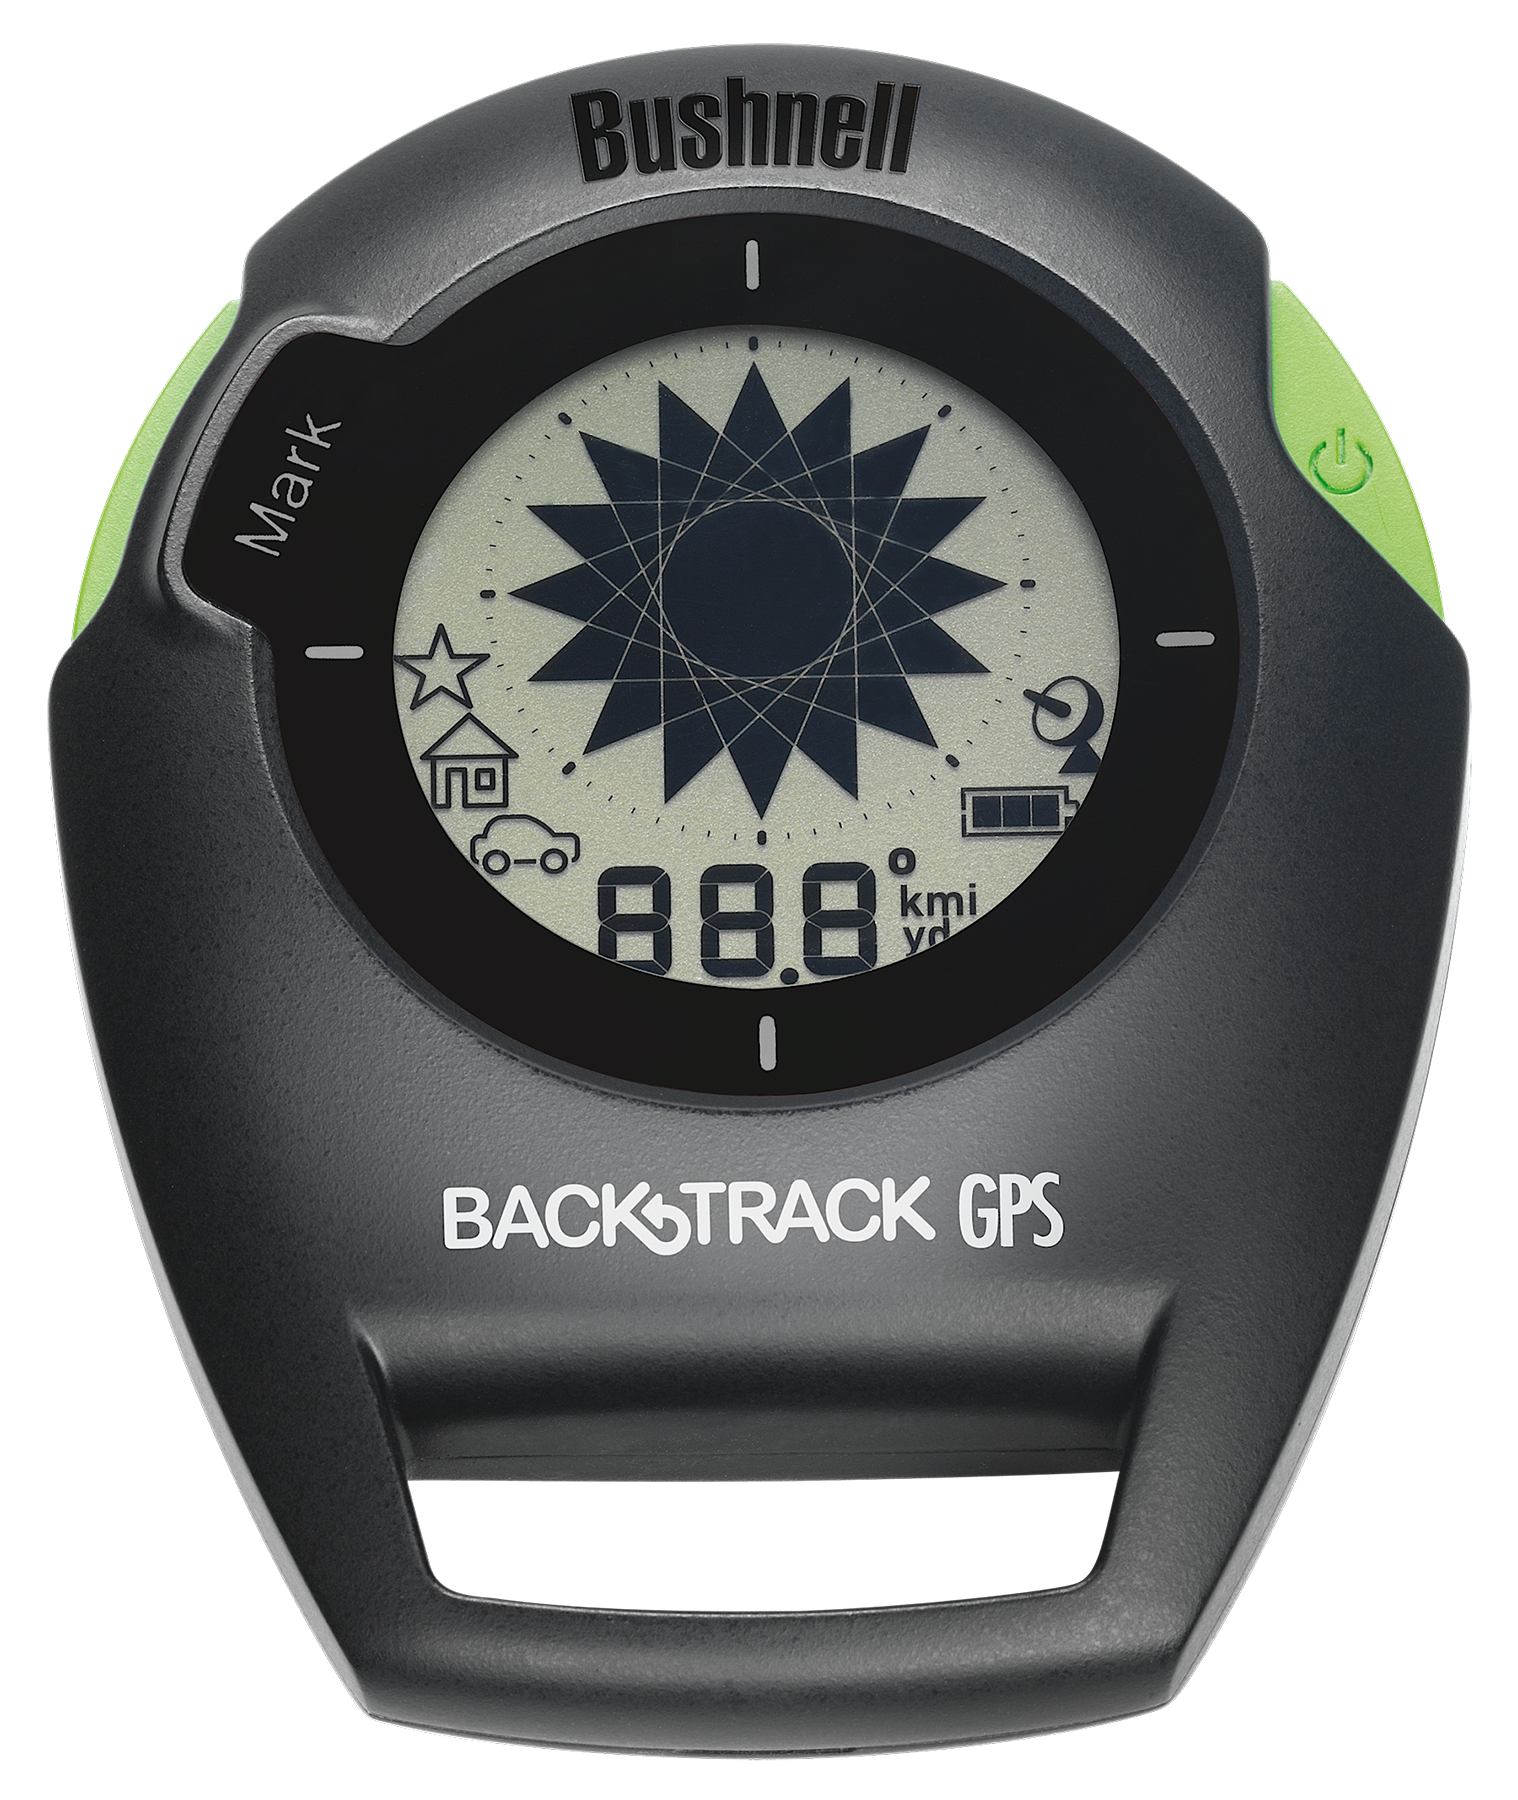 Bushnell 360401 Backtrack GPS B&W LCD Display 3 AAA